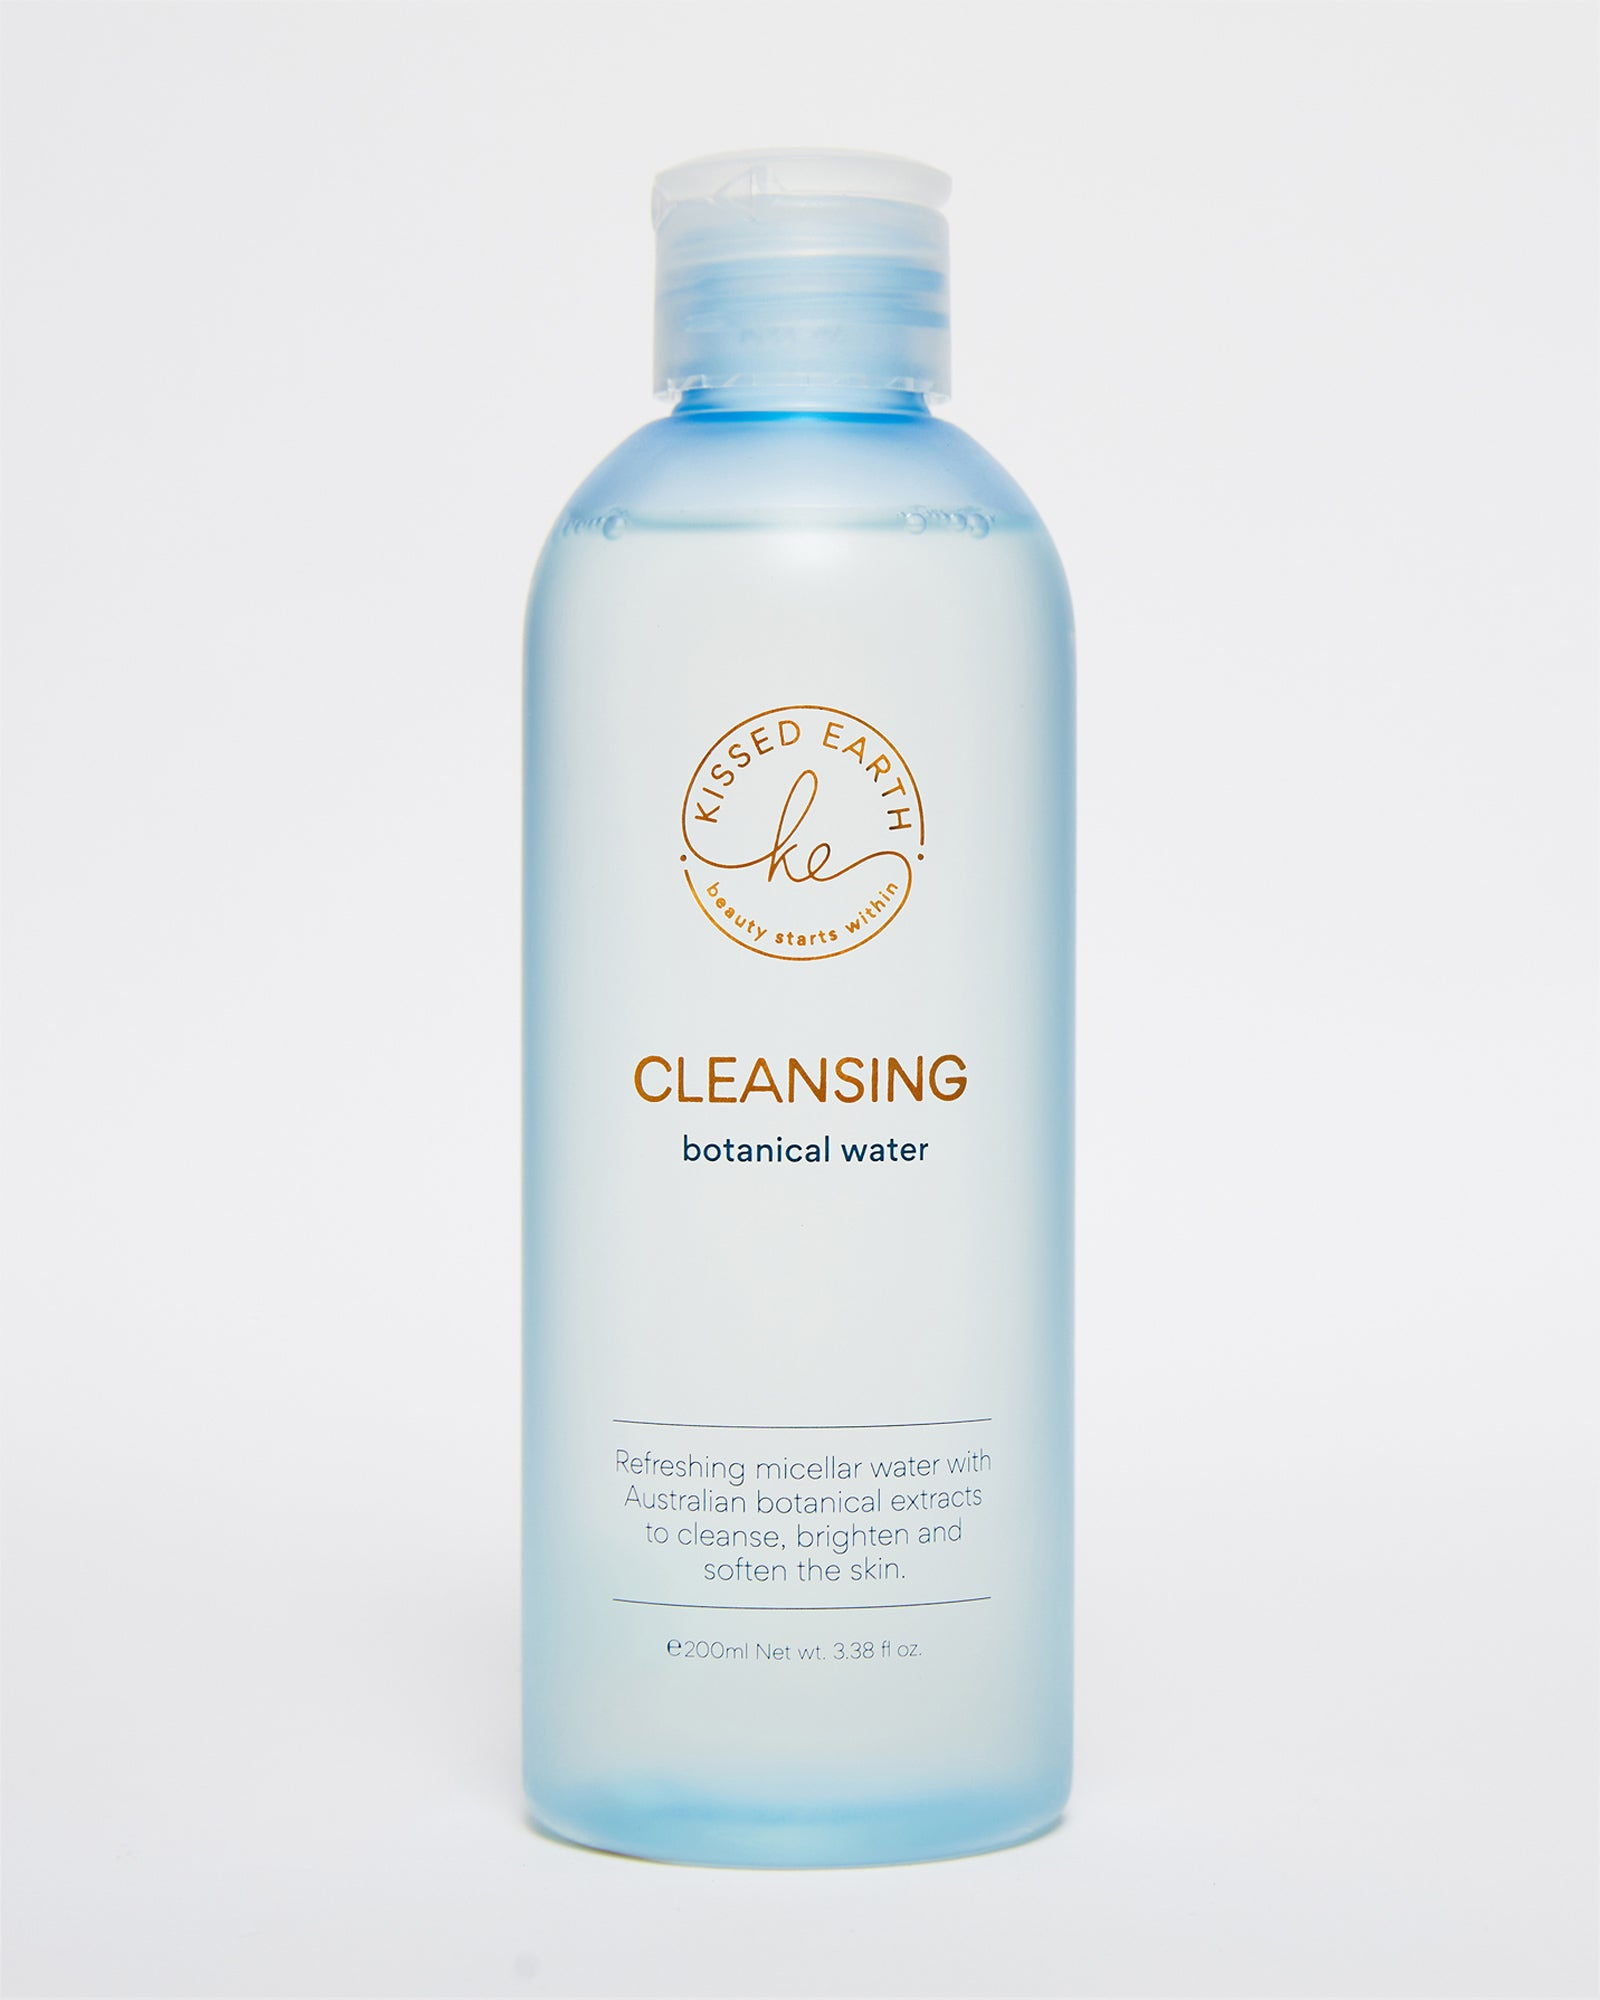 Cleansing Botanical Water